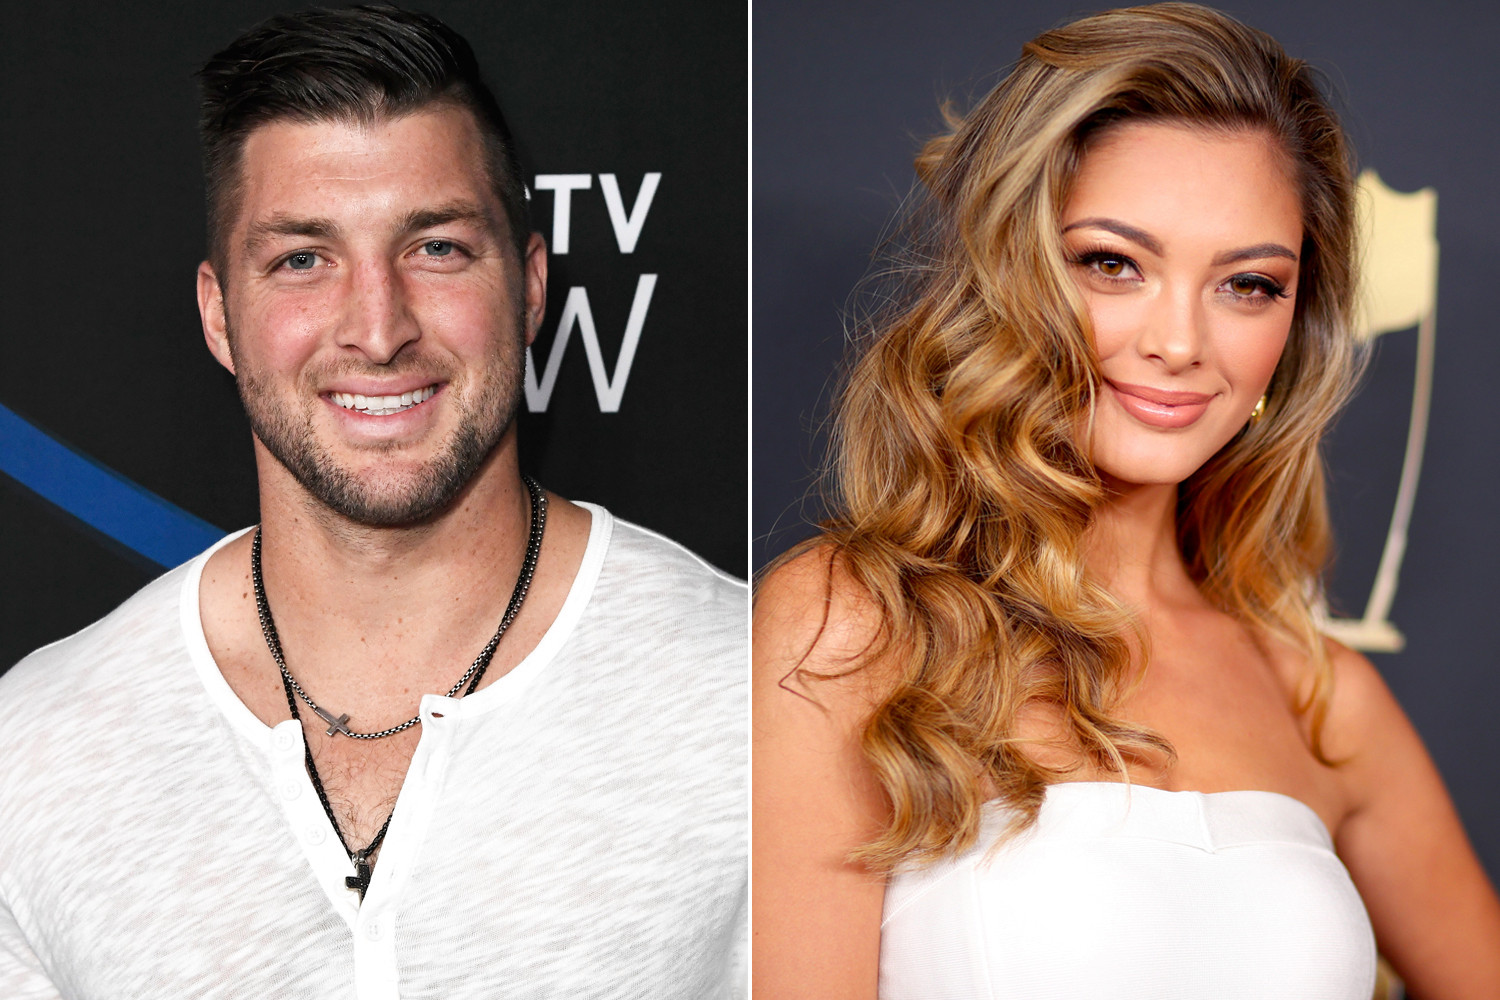 Tim Tebow celebrates engagement at Disney World